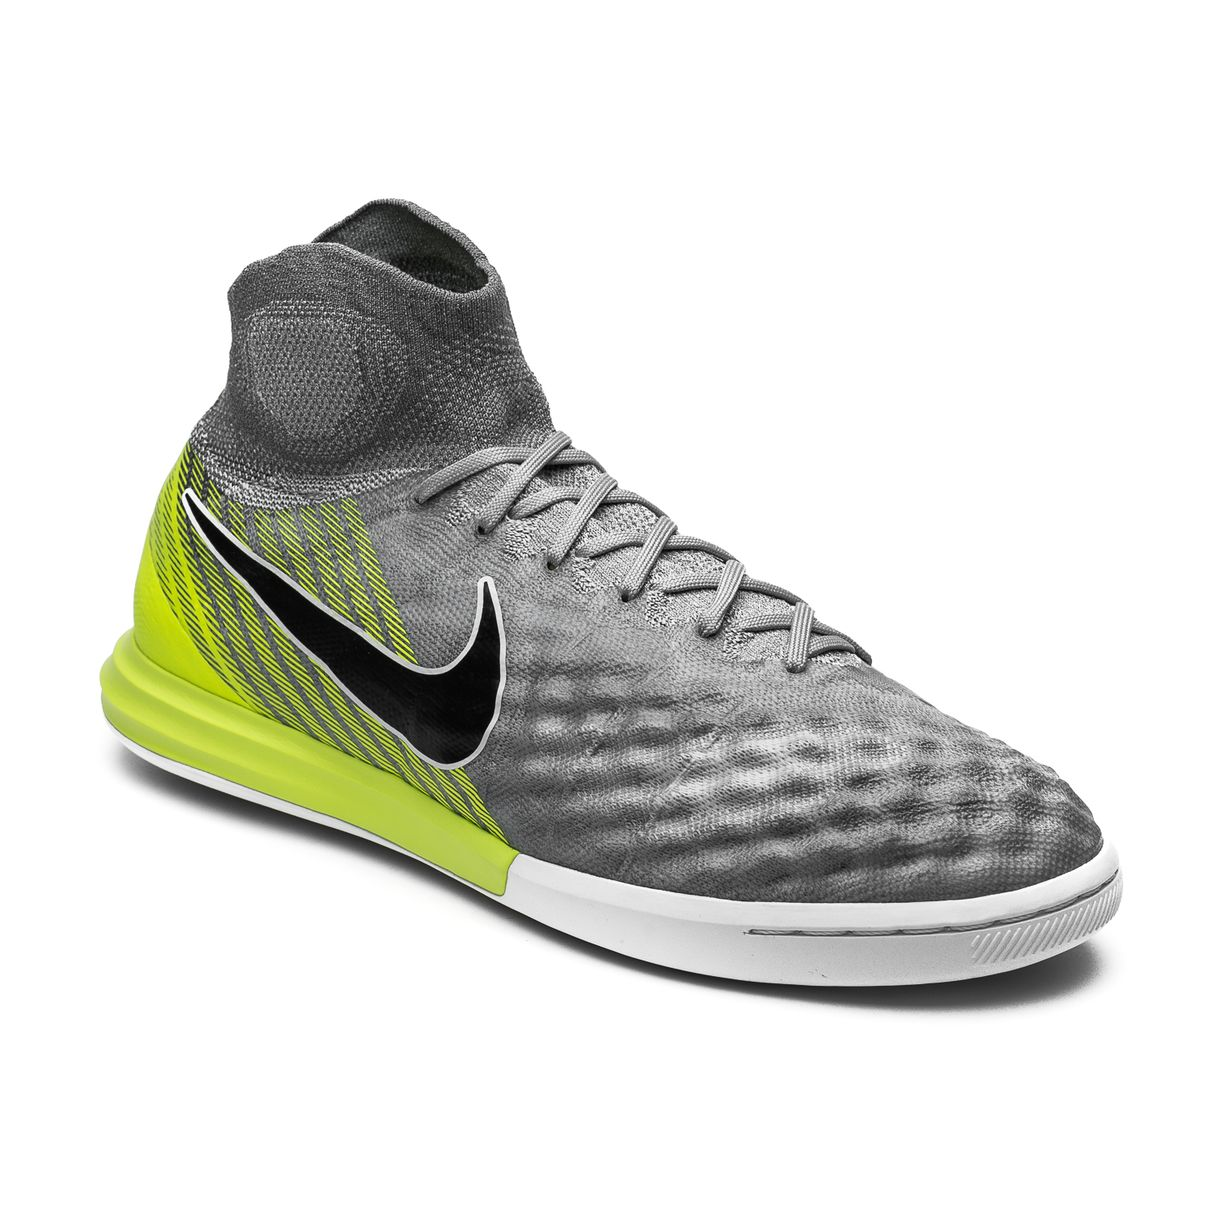 b865fa7264a7 Nike MagistaX Proximo II DF IC Motion Blur - Wolf Grey   Cool Grey   Pure  Platinum   Black